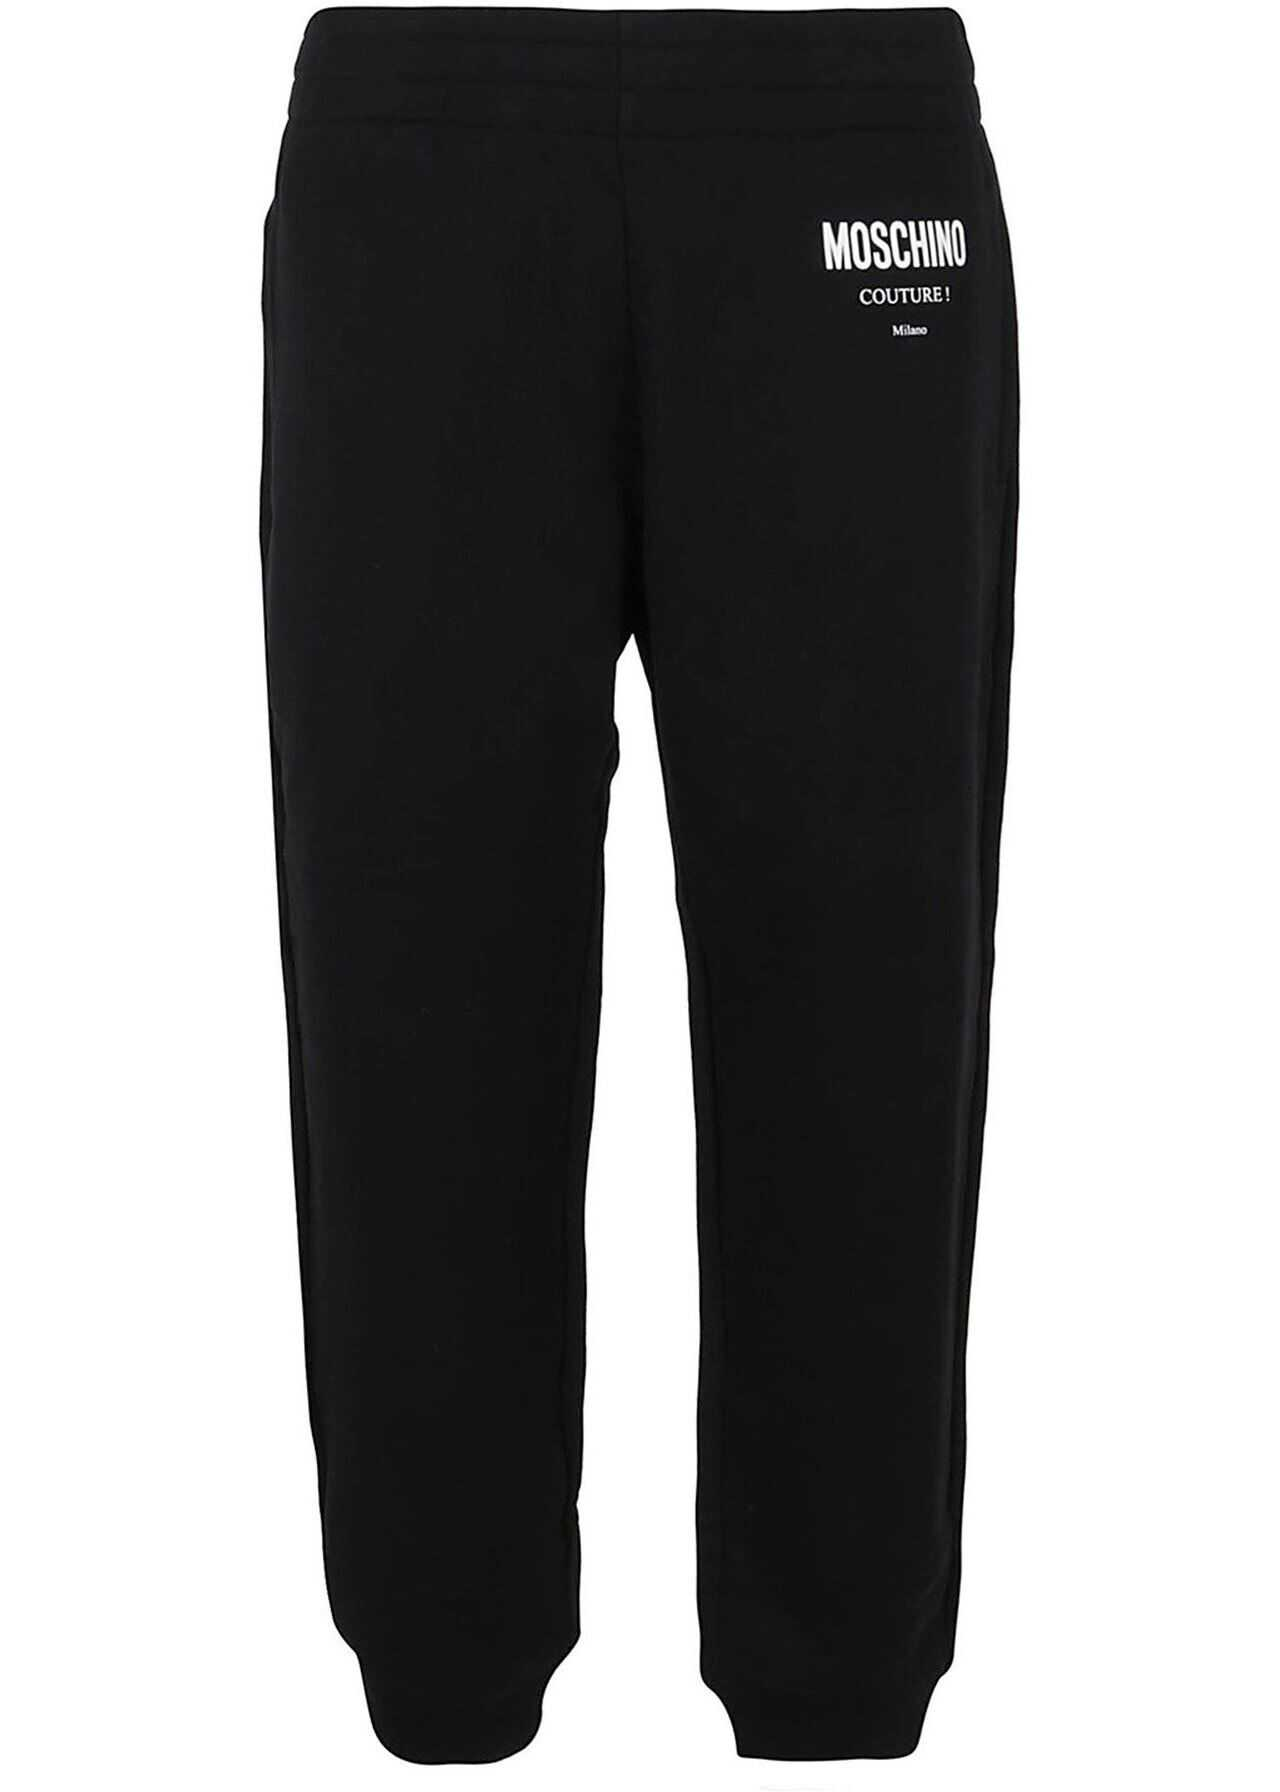 Moschino Cotton Tracksuit Bottoms In Black Black imagine